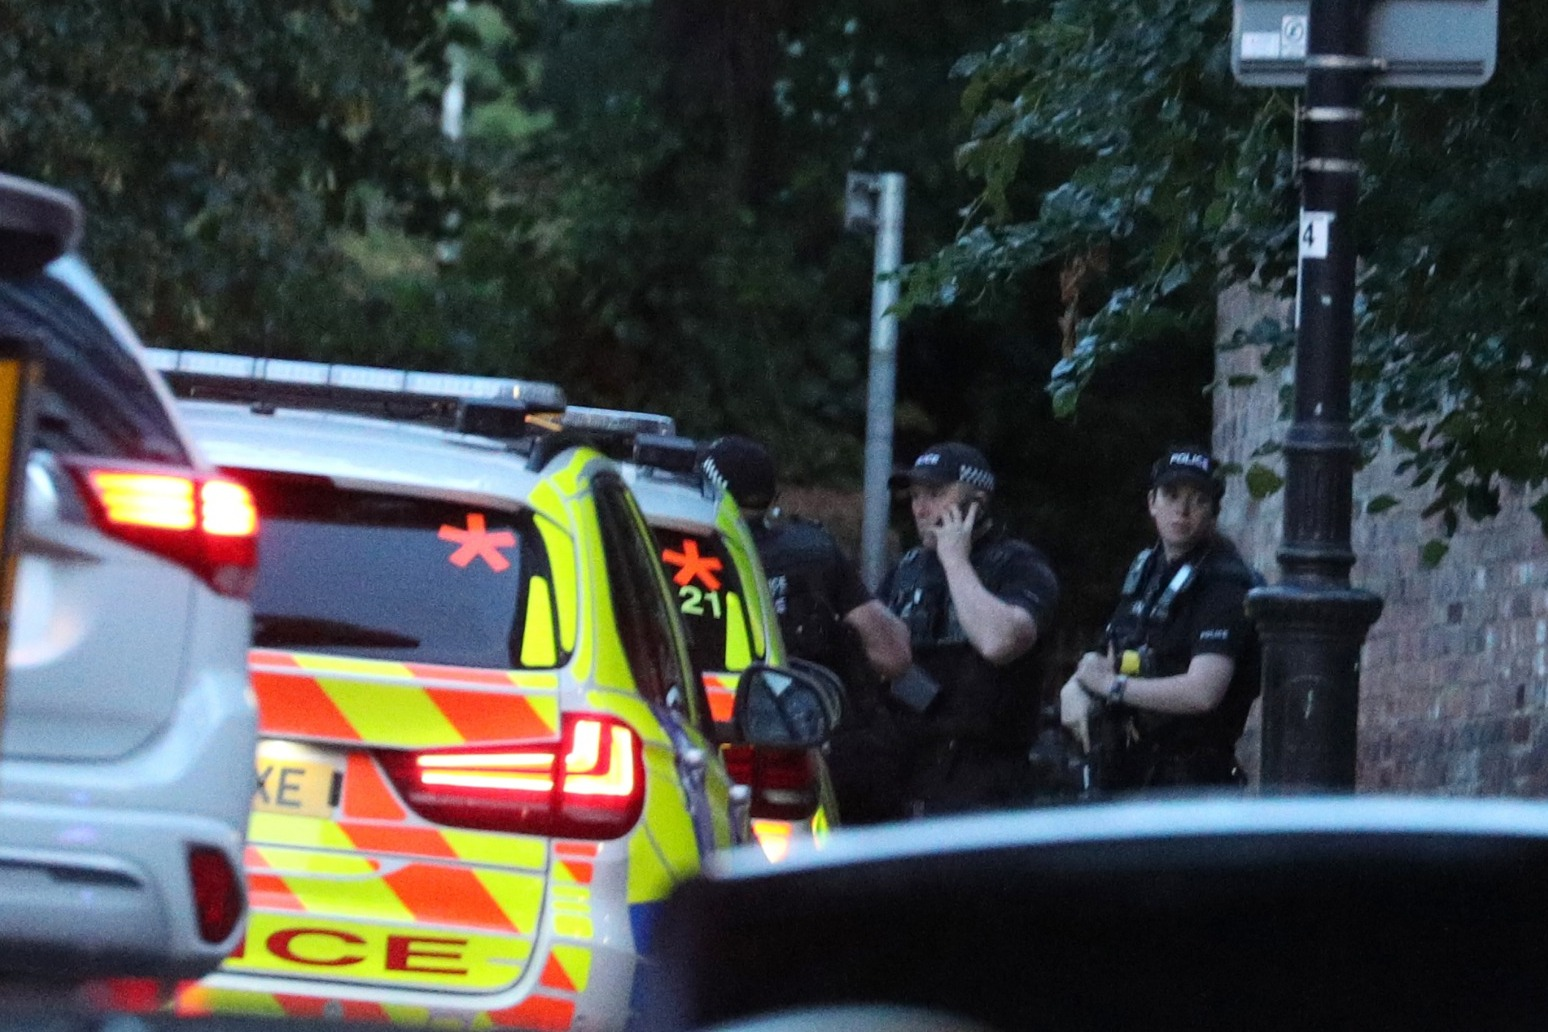 Knife attack takes place in Reading town centre